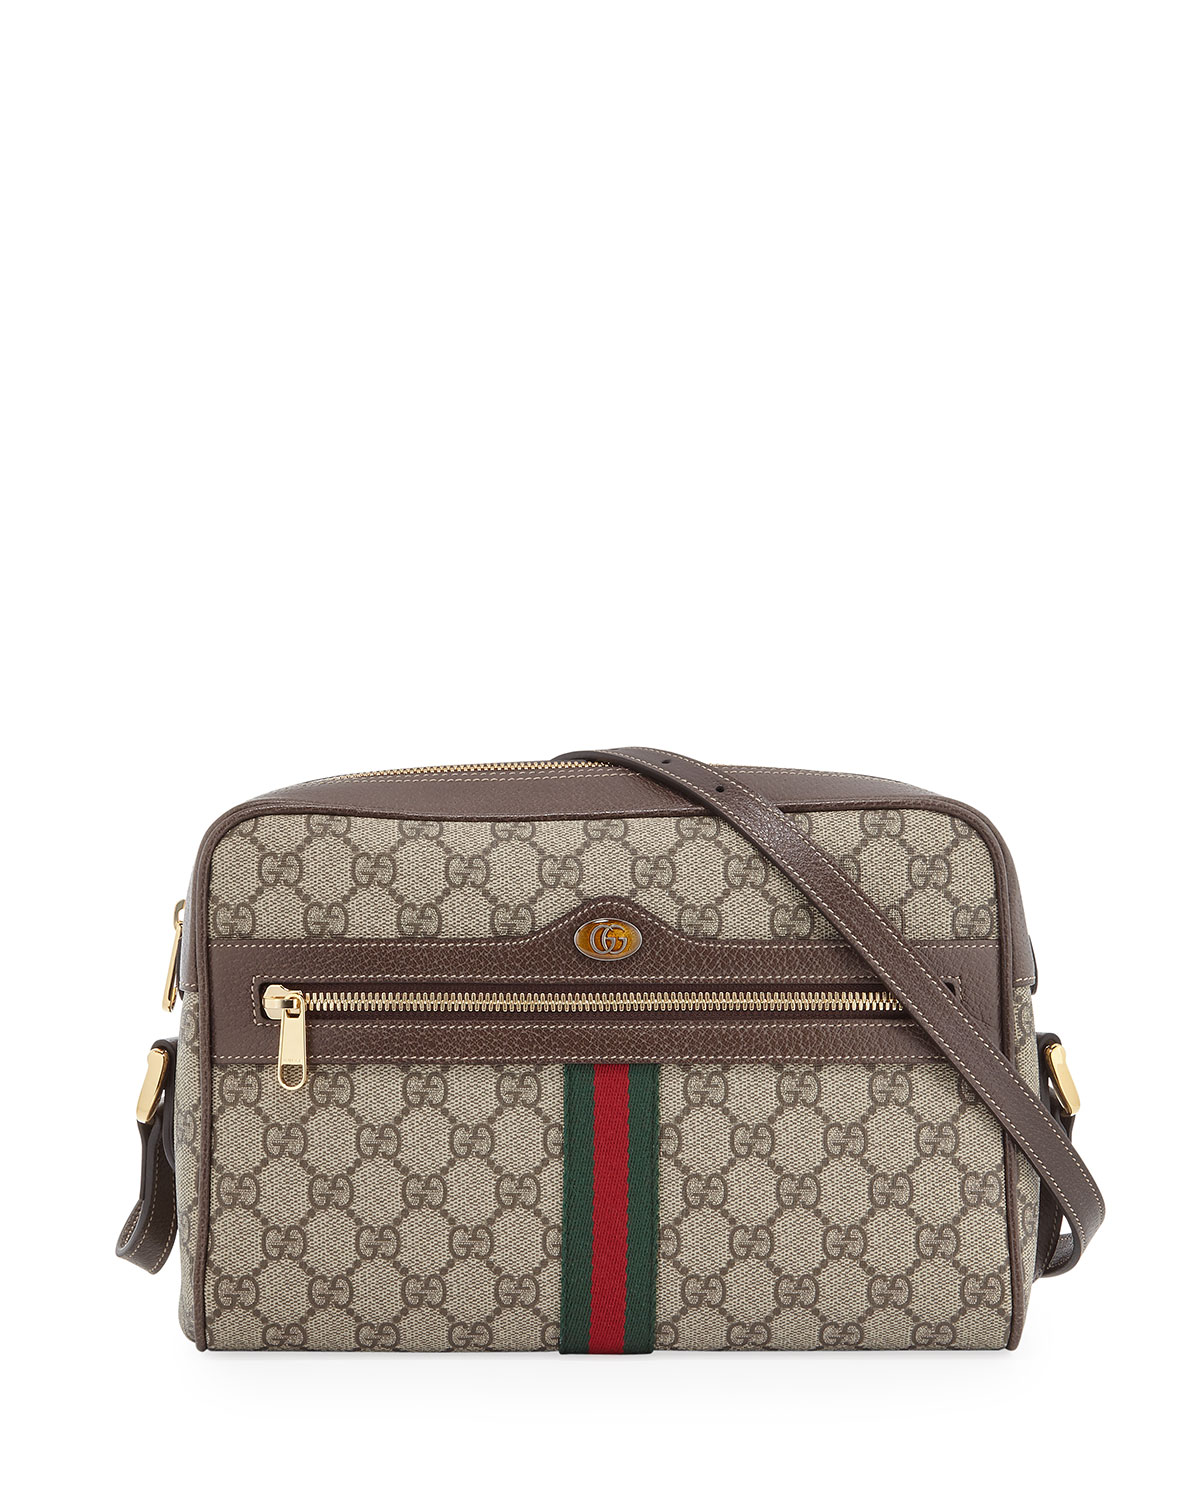 45c539c521f Gucci Ophidia Medium GG Supreme Camera Crossbody Bag | Neiman Marcus